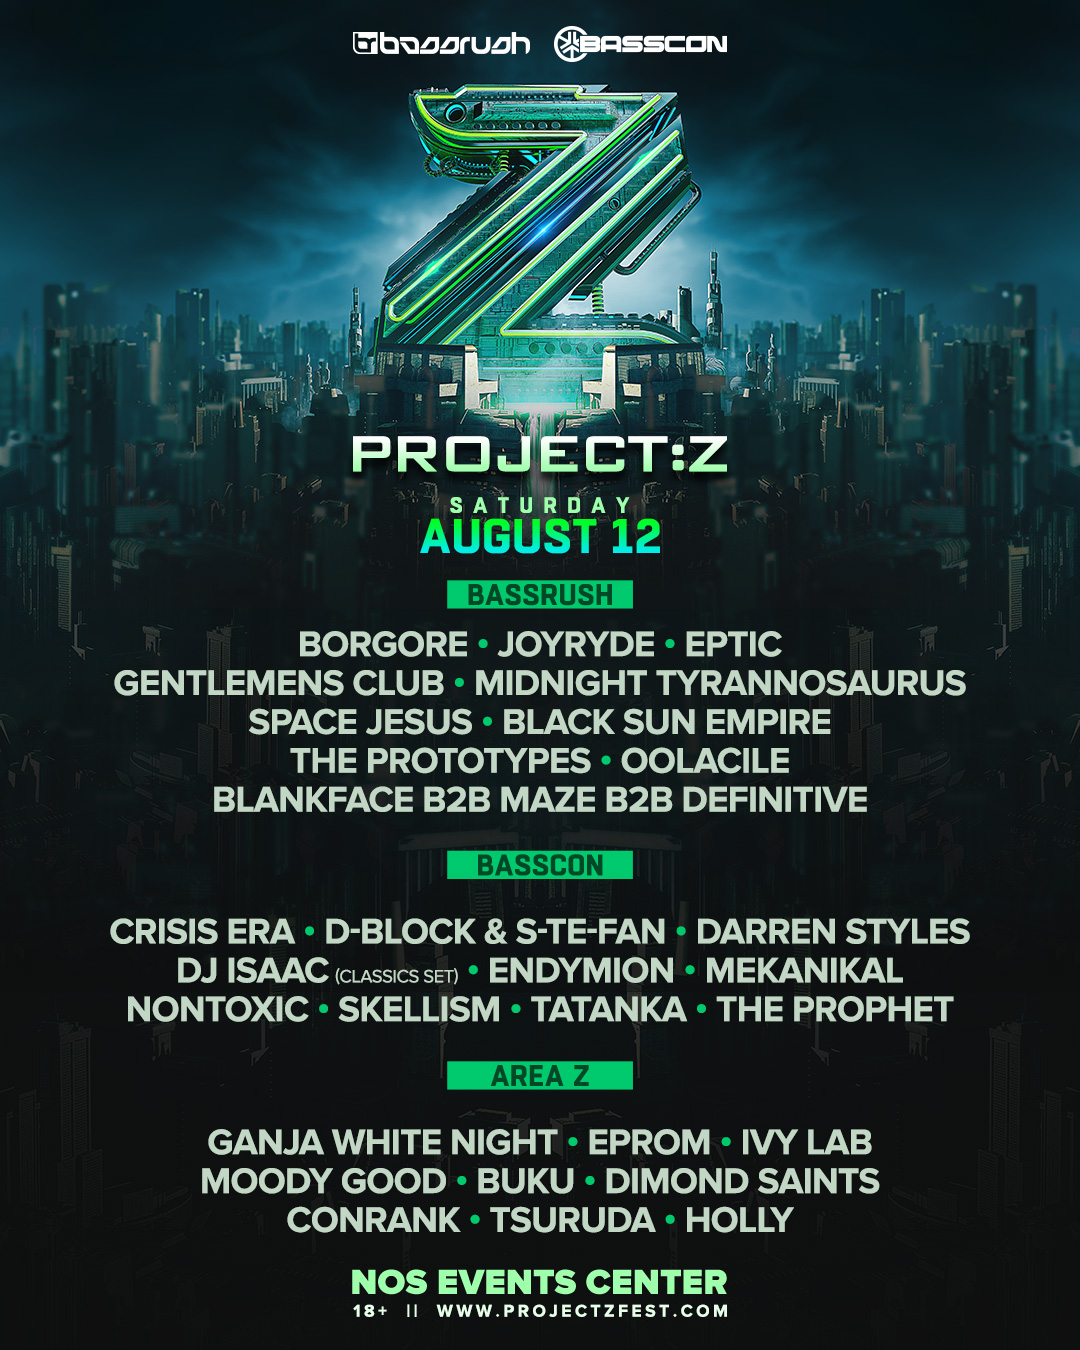 Insomniac's Project:Z flyer